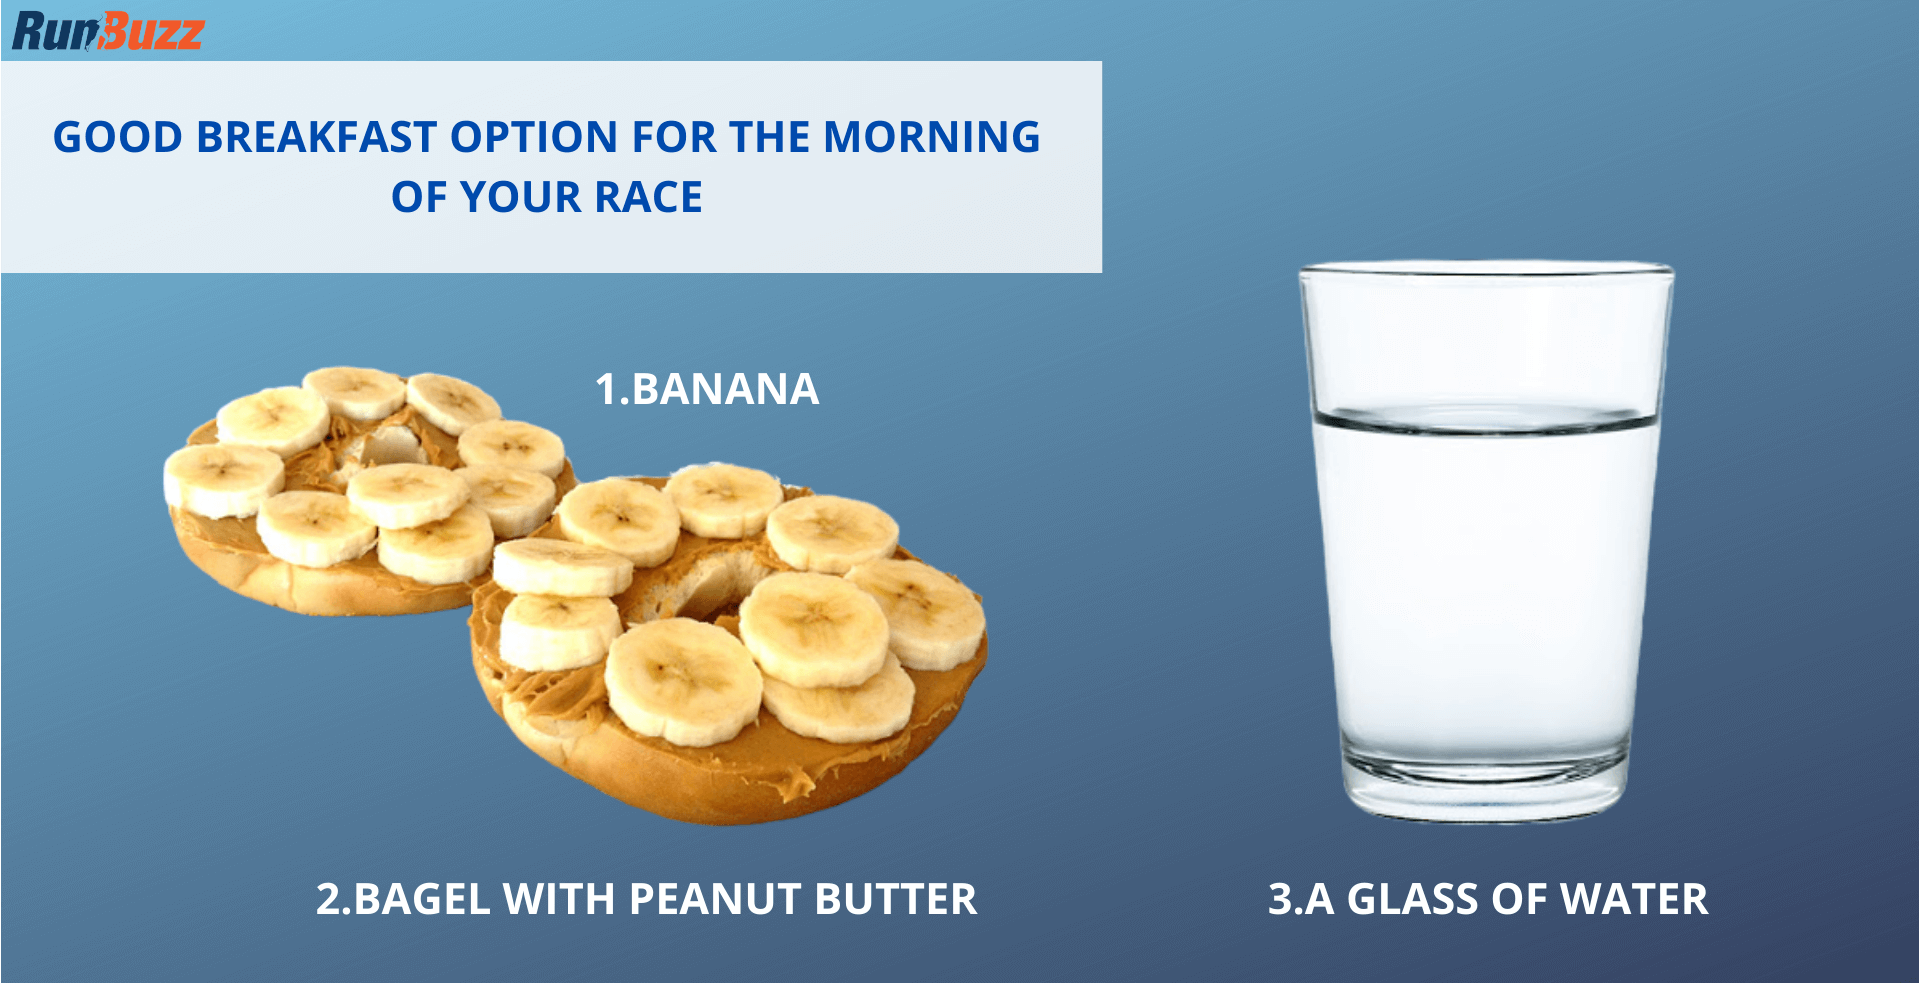 Good-breakfast-option-for-the-morning-of-your-race